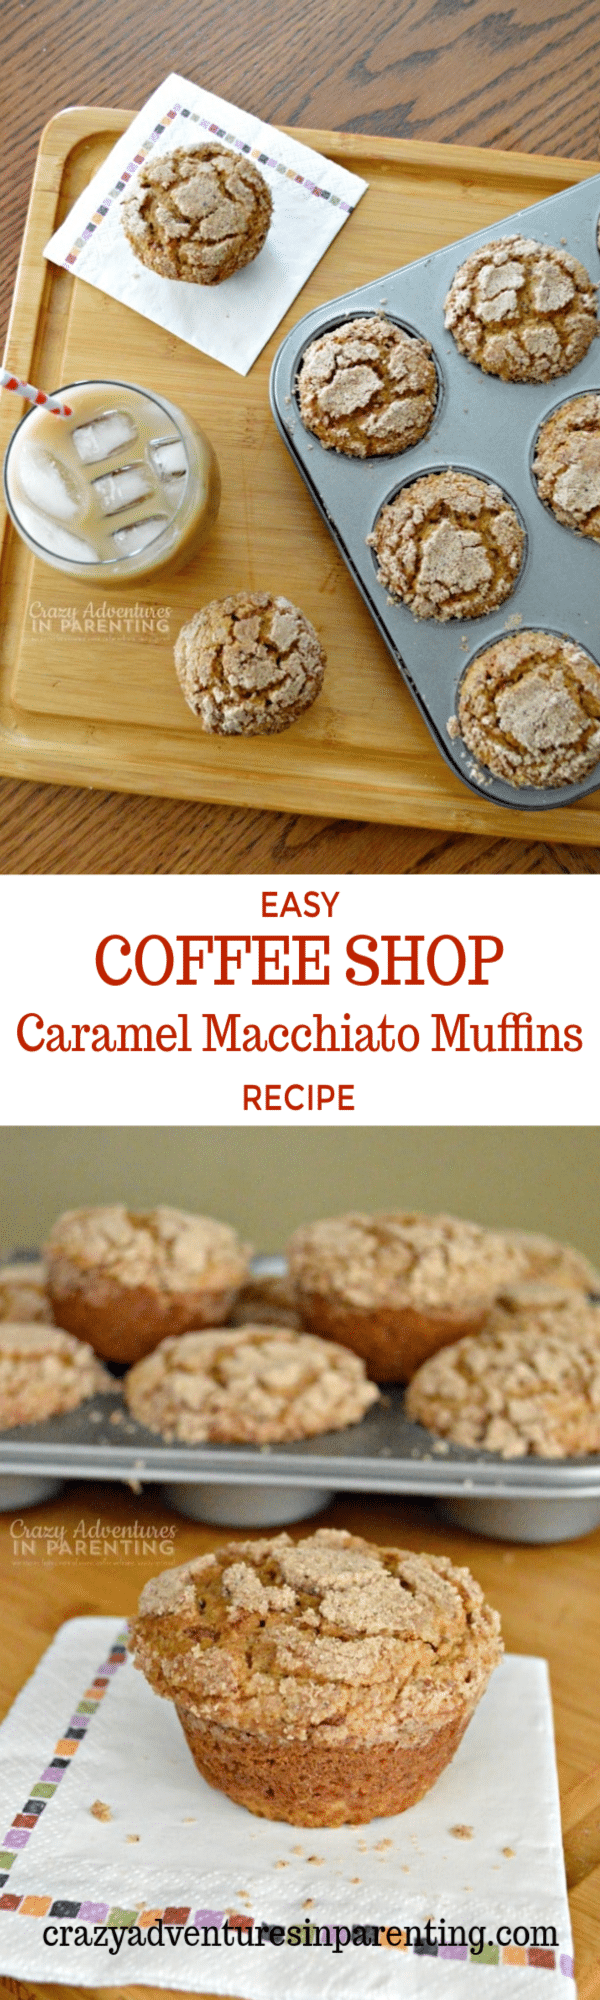 Easy Homemade Coffee Shop Caramel Macchiato Muffins Recipe